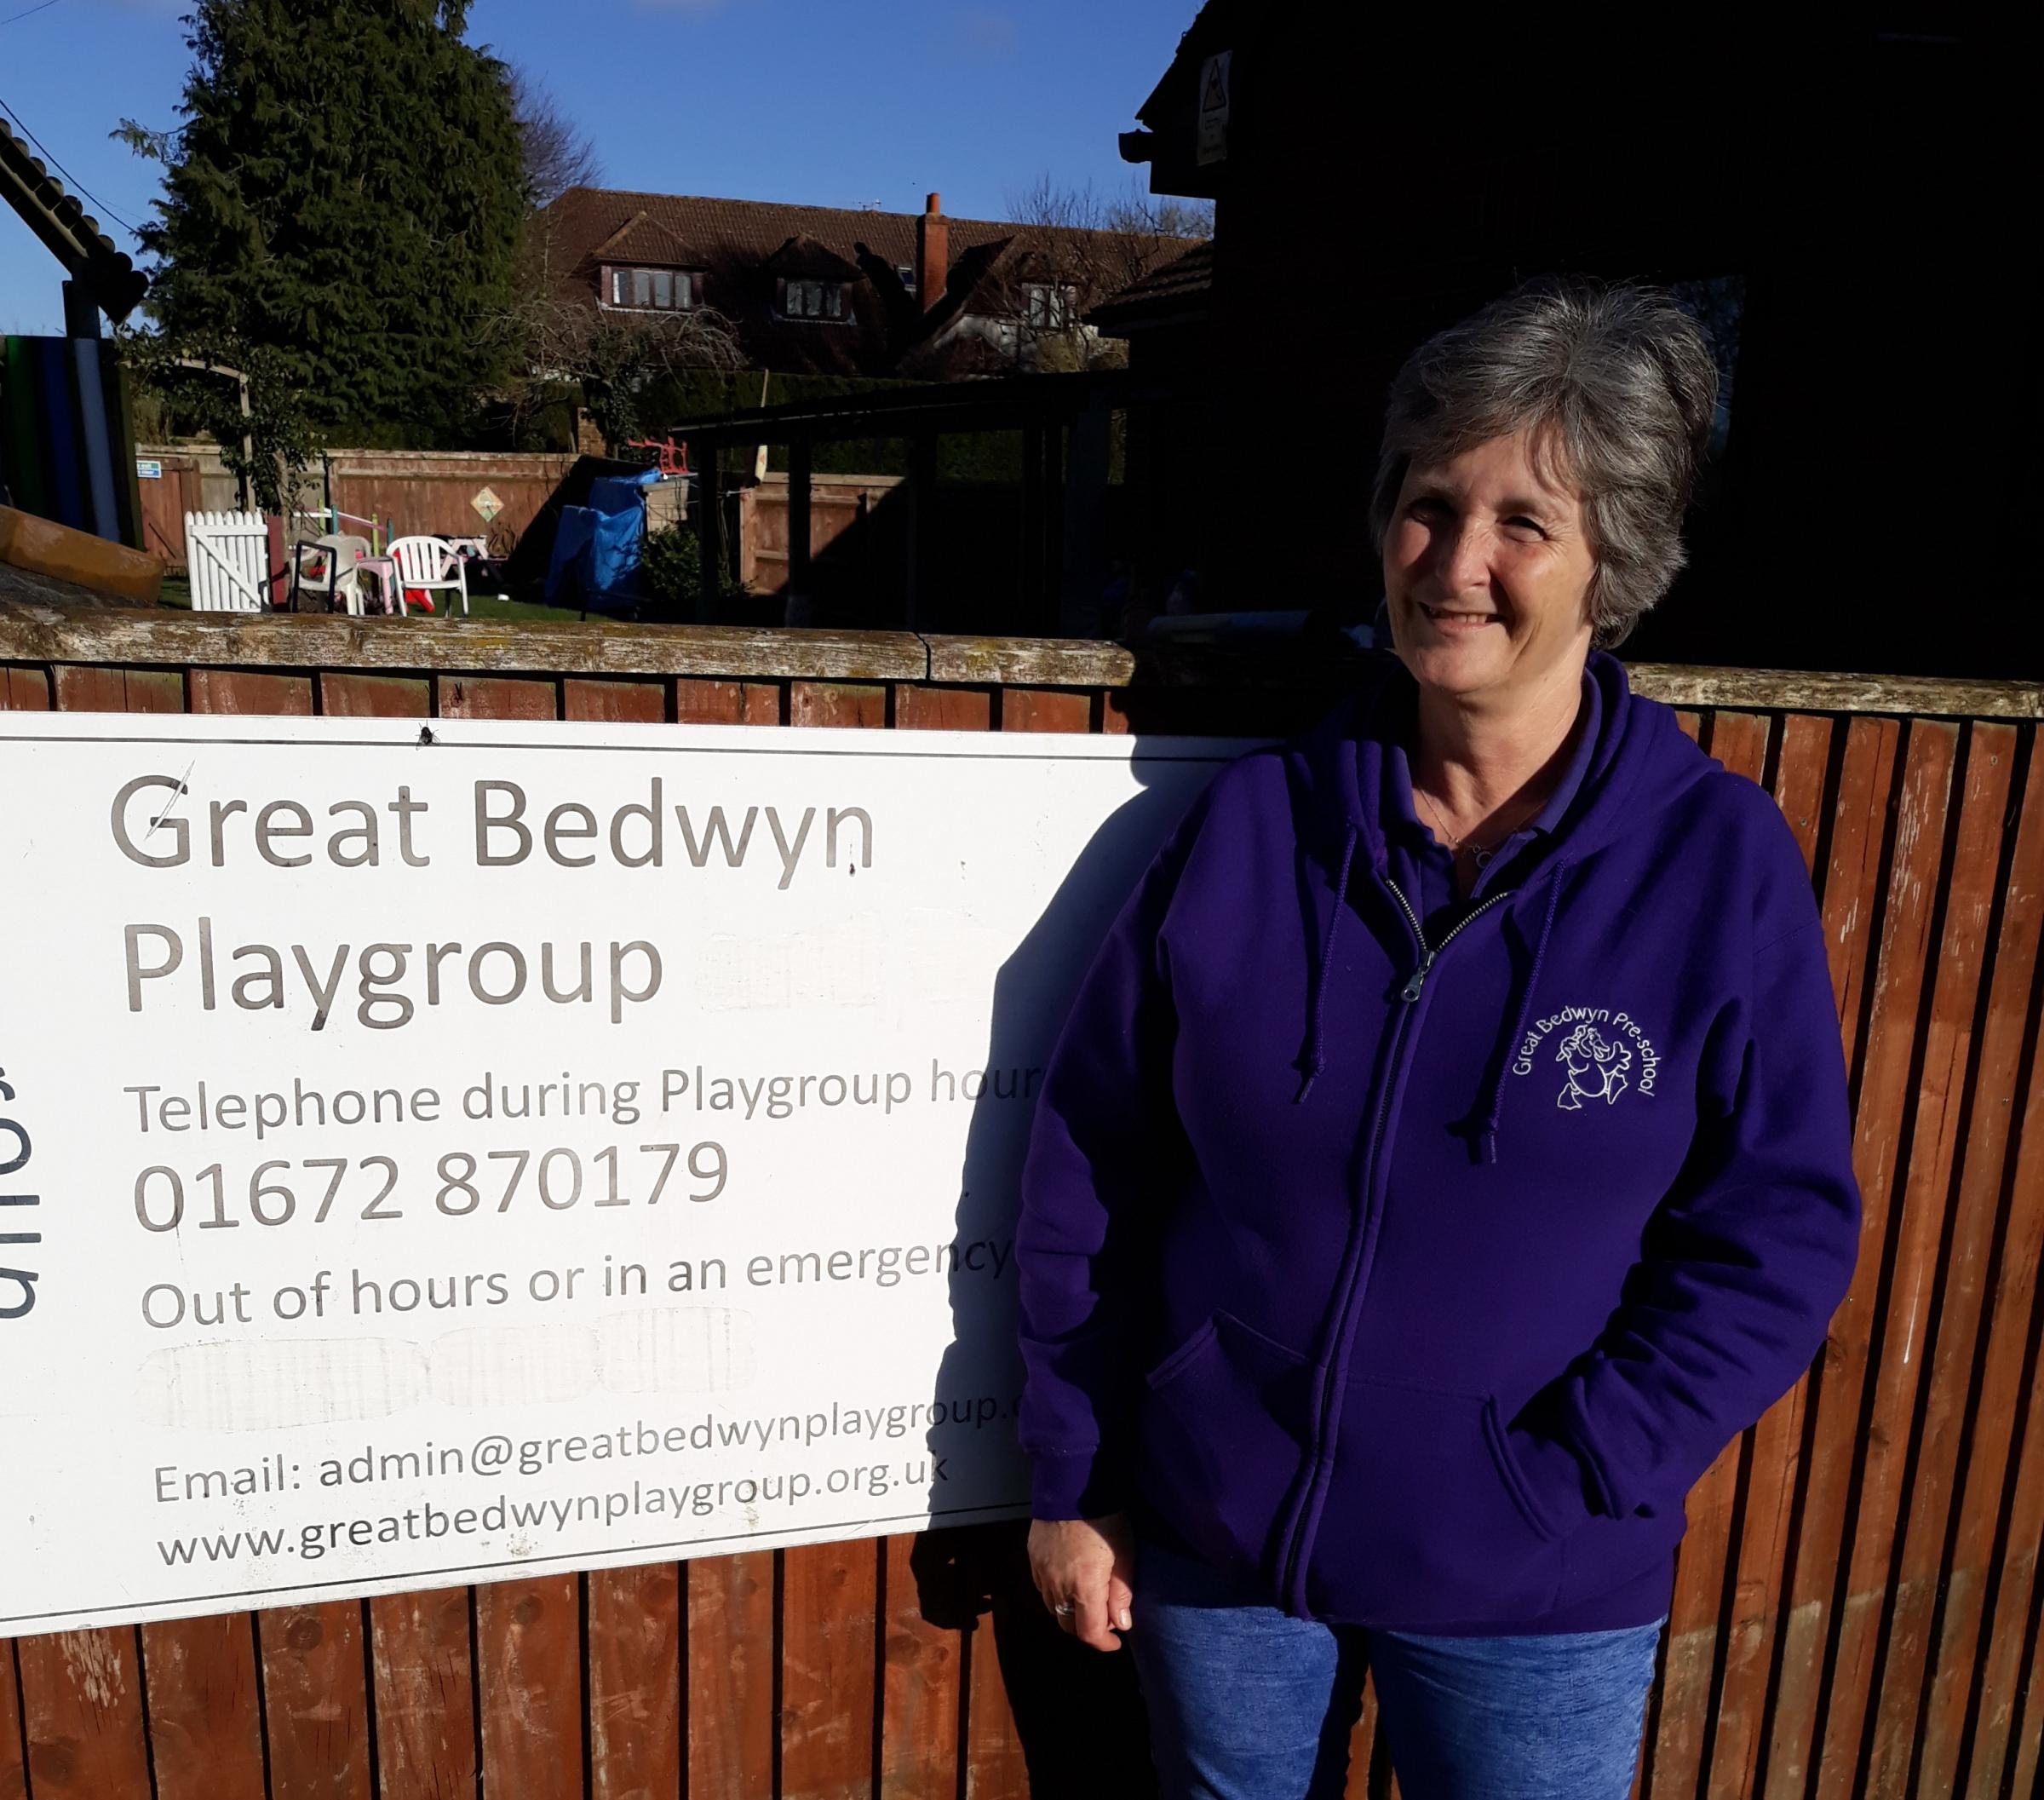 Pauline Perry of Great Bedwyn playgroup